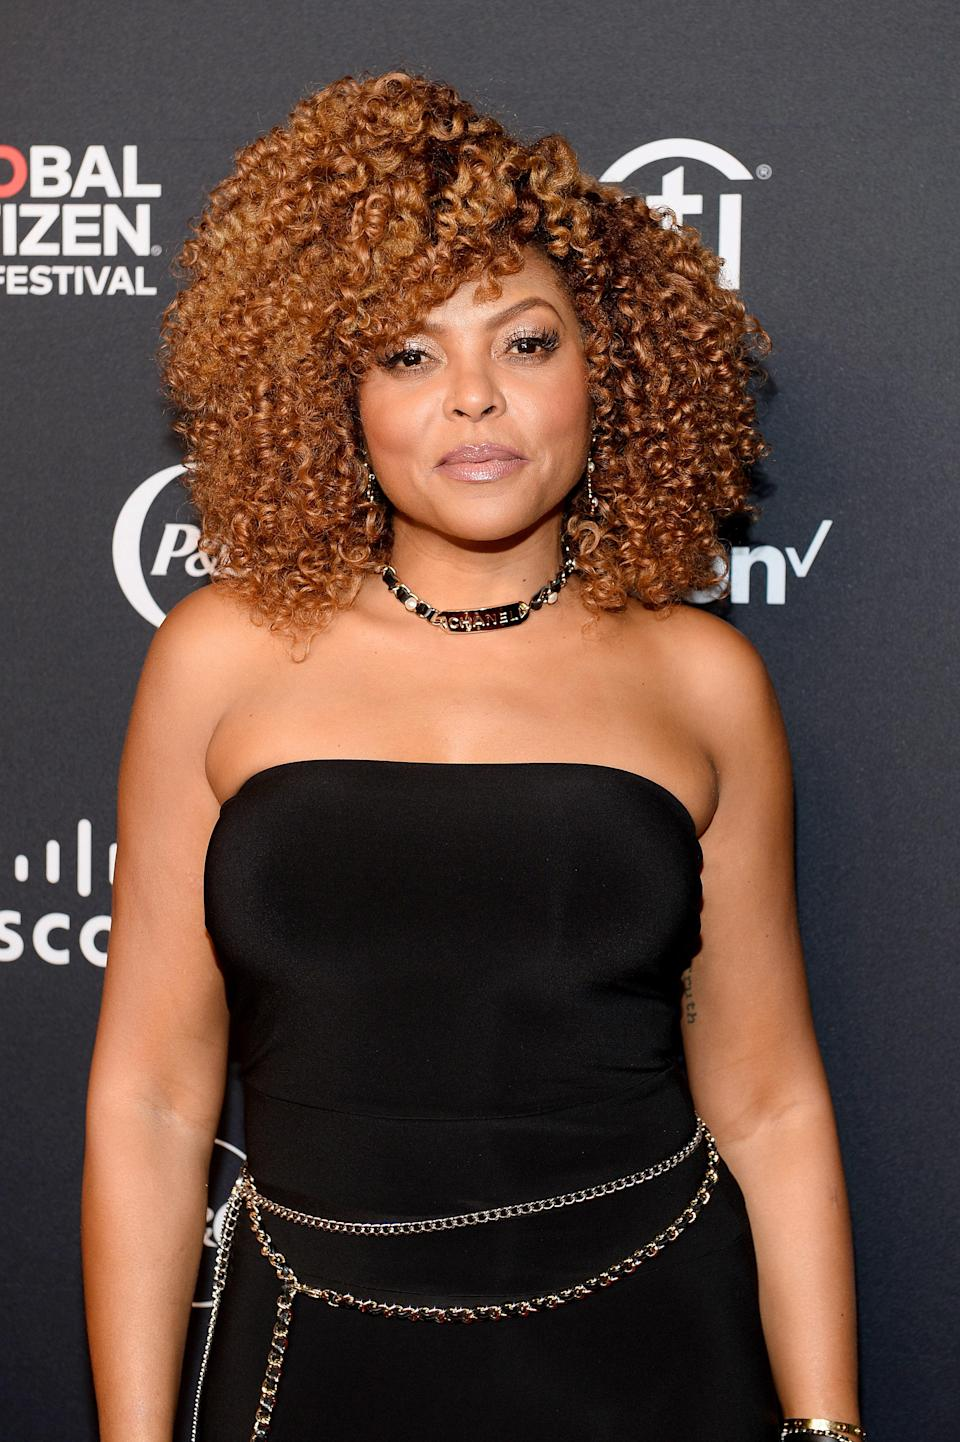 """""""This look is fun and head-turning without being too drastic of a change from deeper tones,"""" says Dark and Lovely celebrity stylist <a href=""""https://www.instagram.com/derickmonroe/"""" rel=""""nofollow noopener"""" target=""""_blank"""" data-ylk=""""slk:Derick Monroe"""" class=""""link rapid-noclick-resp"""">Derick Monroe</a>. If you're going to go lighter, Monroe stresses the importance of keeping your hair healthy enough to handle color. """"The last thing you want to do is a chemical process on already damaged hair,"""" he says. """"A pro tip is to have a maintenance program to keep your hair healthy, shiny, and moisturized. That could be as simple as a <a href=""""https://www.glamour.com/gallery/best-hair-masks-for-dry-damaged-hair?mbid=synd_yahoo_rss"""" rel=""""nofollow noopener"""" target=""""_blank"""" data-ylk=""""slk:deep conditioning treatment"""" class=""""link rapid-noclick-resp"""">deep conditioning treatment</a> at home."""""""